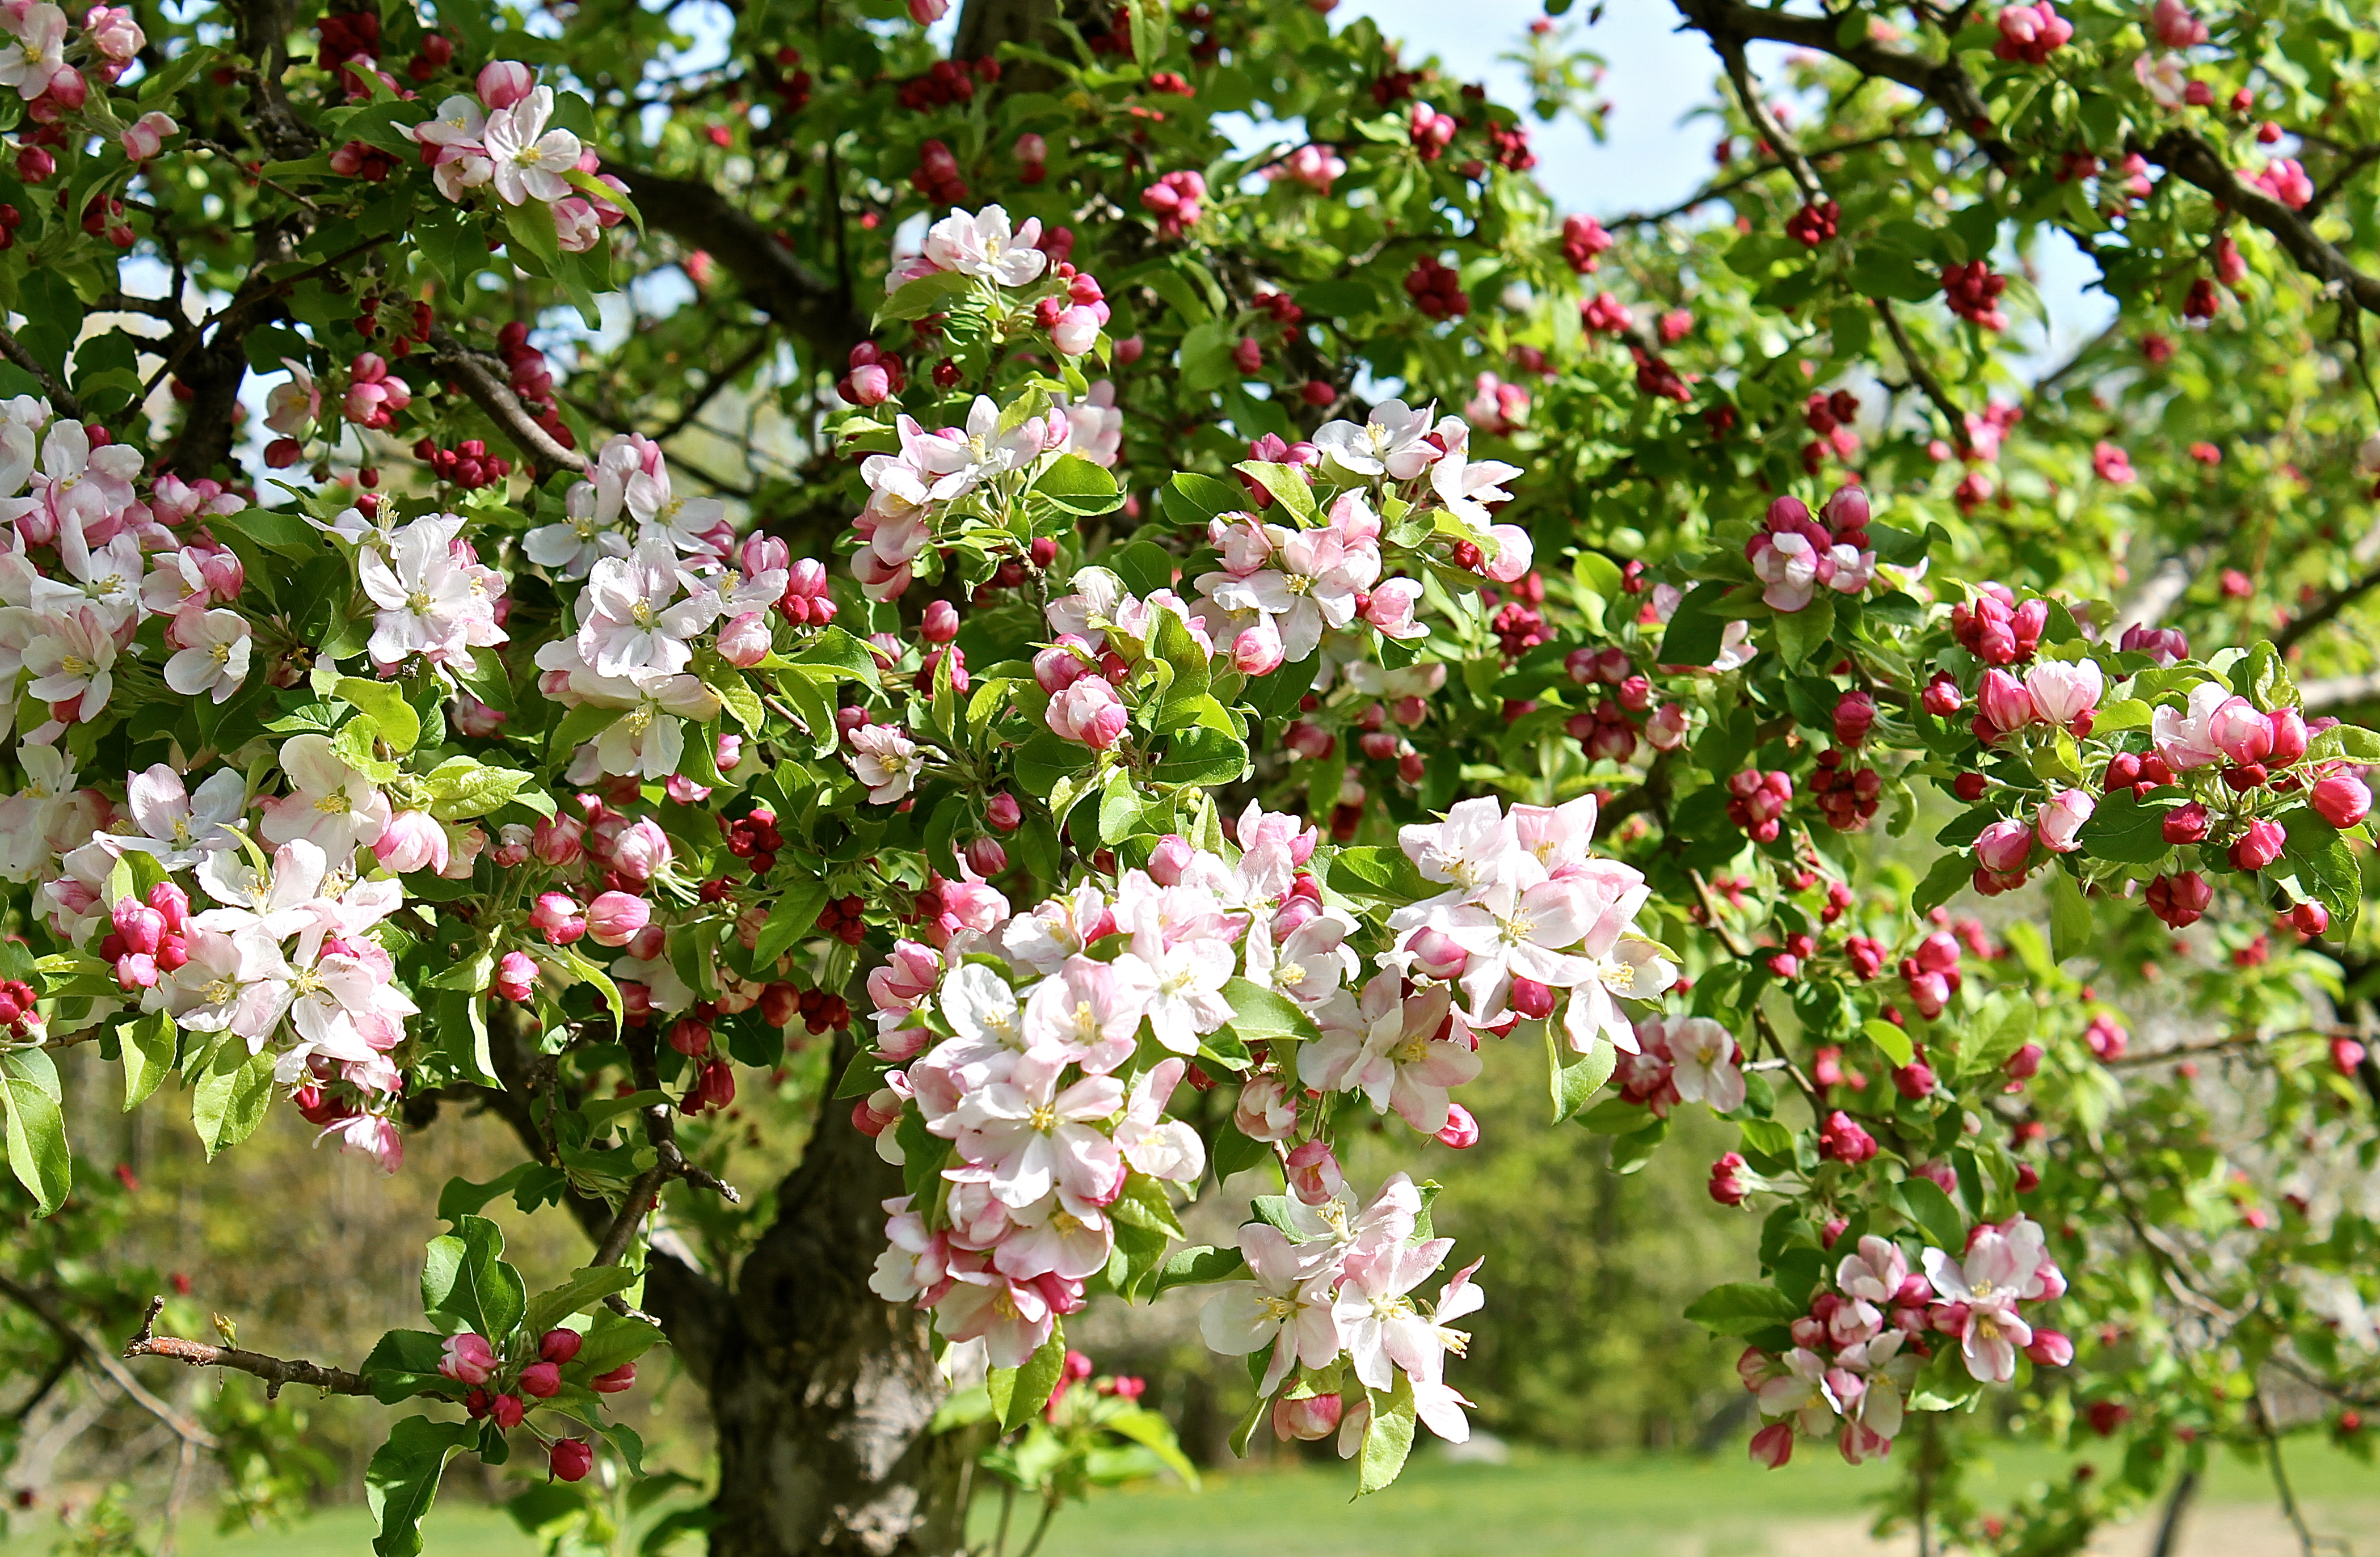 apple blossom time in new england back road journal. Black Bedroom Furniture Sets. Home Design Ideas